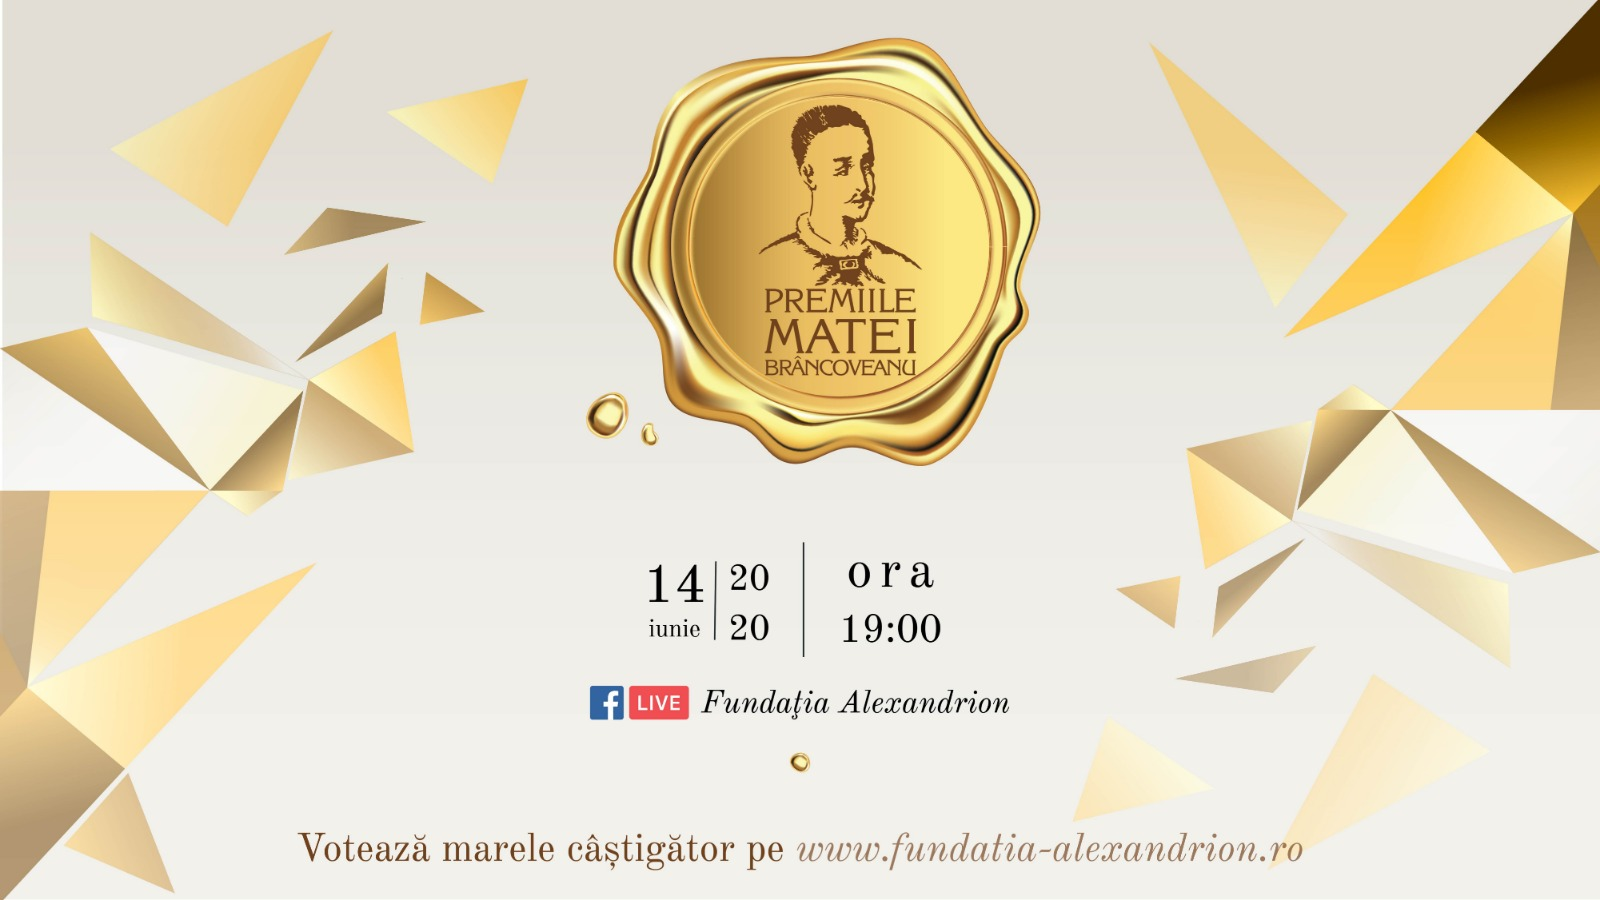 Matei Brâncoveanu Gala 2020 broadcast live on Facebook, on the 14th of June  The audience votes online and decides the winner of the 12,000 euros grand prize